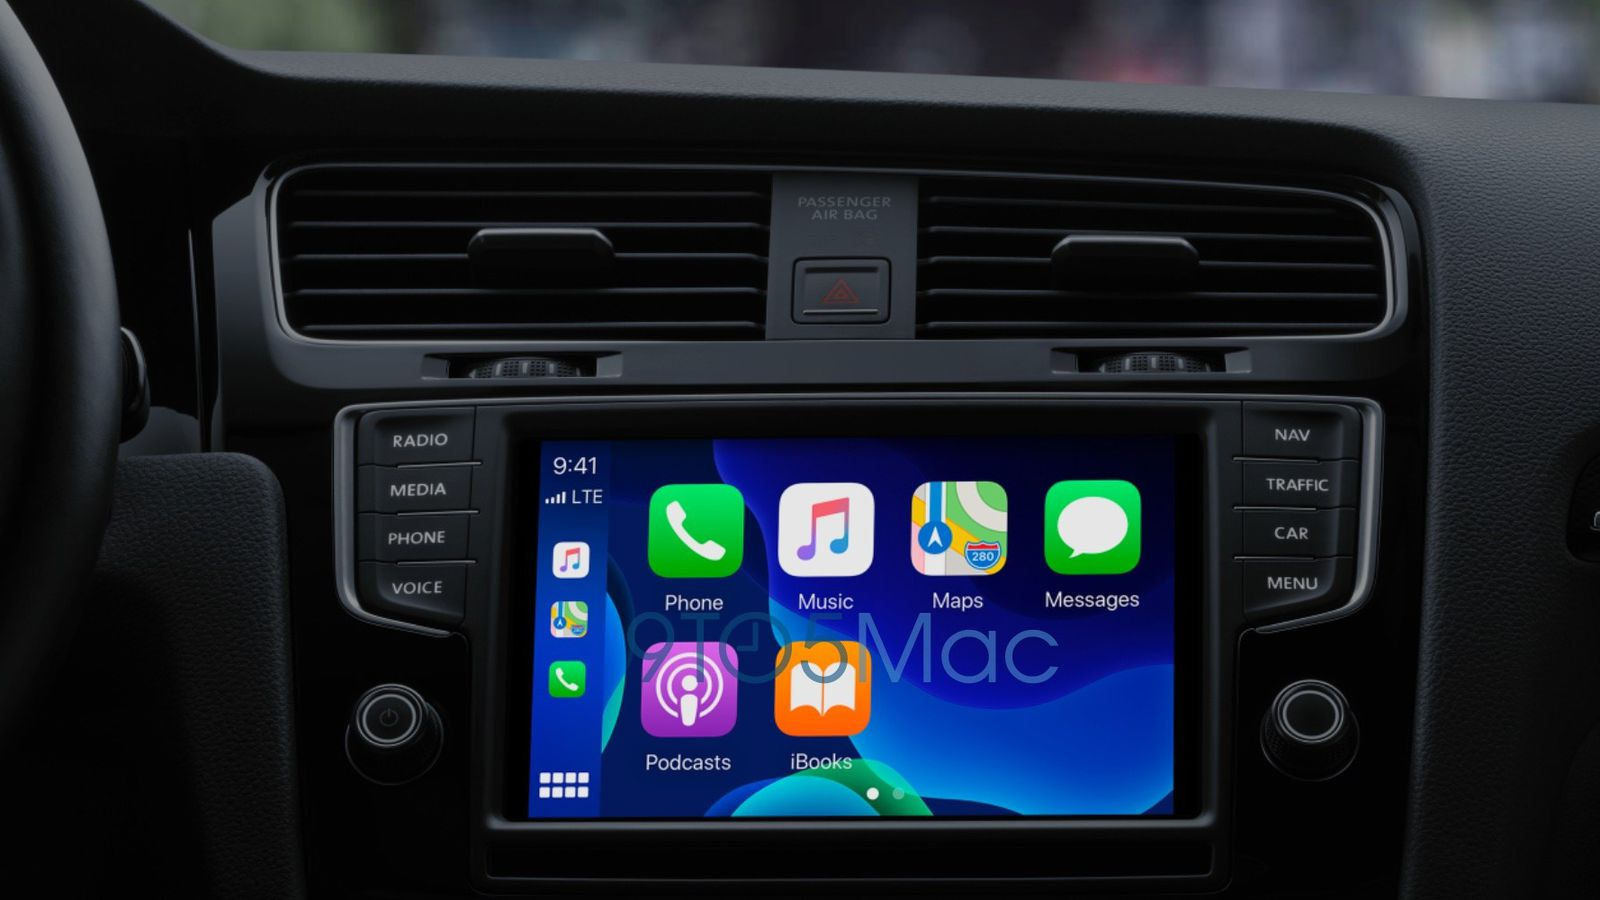 Carplay May Support Wallpapers In Ios 14 Macrumors